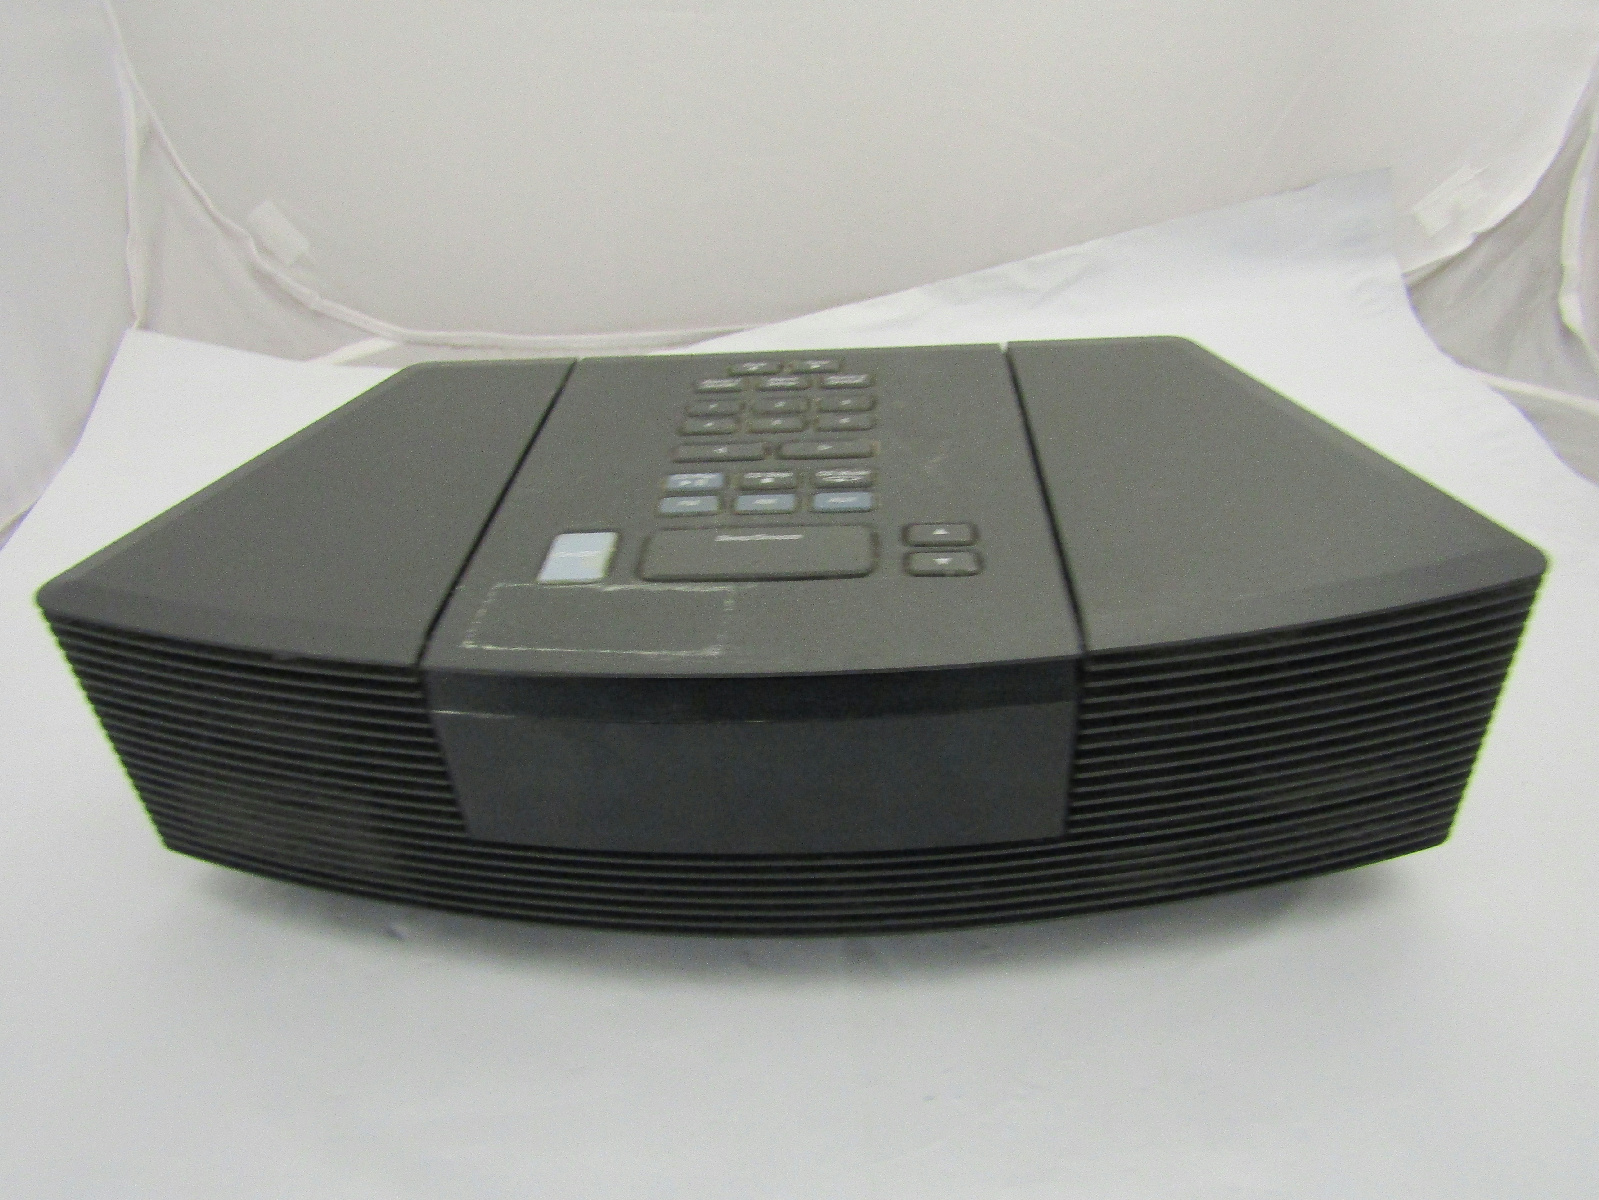 bose wave radio cd player model awrc 1g black for parts. Black Bedroom Furniture Sets. Home Design Ideas